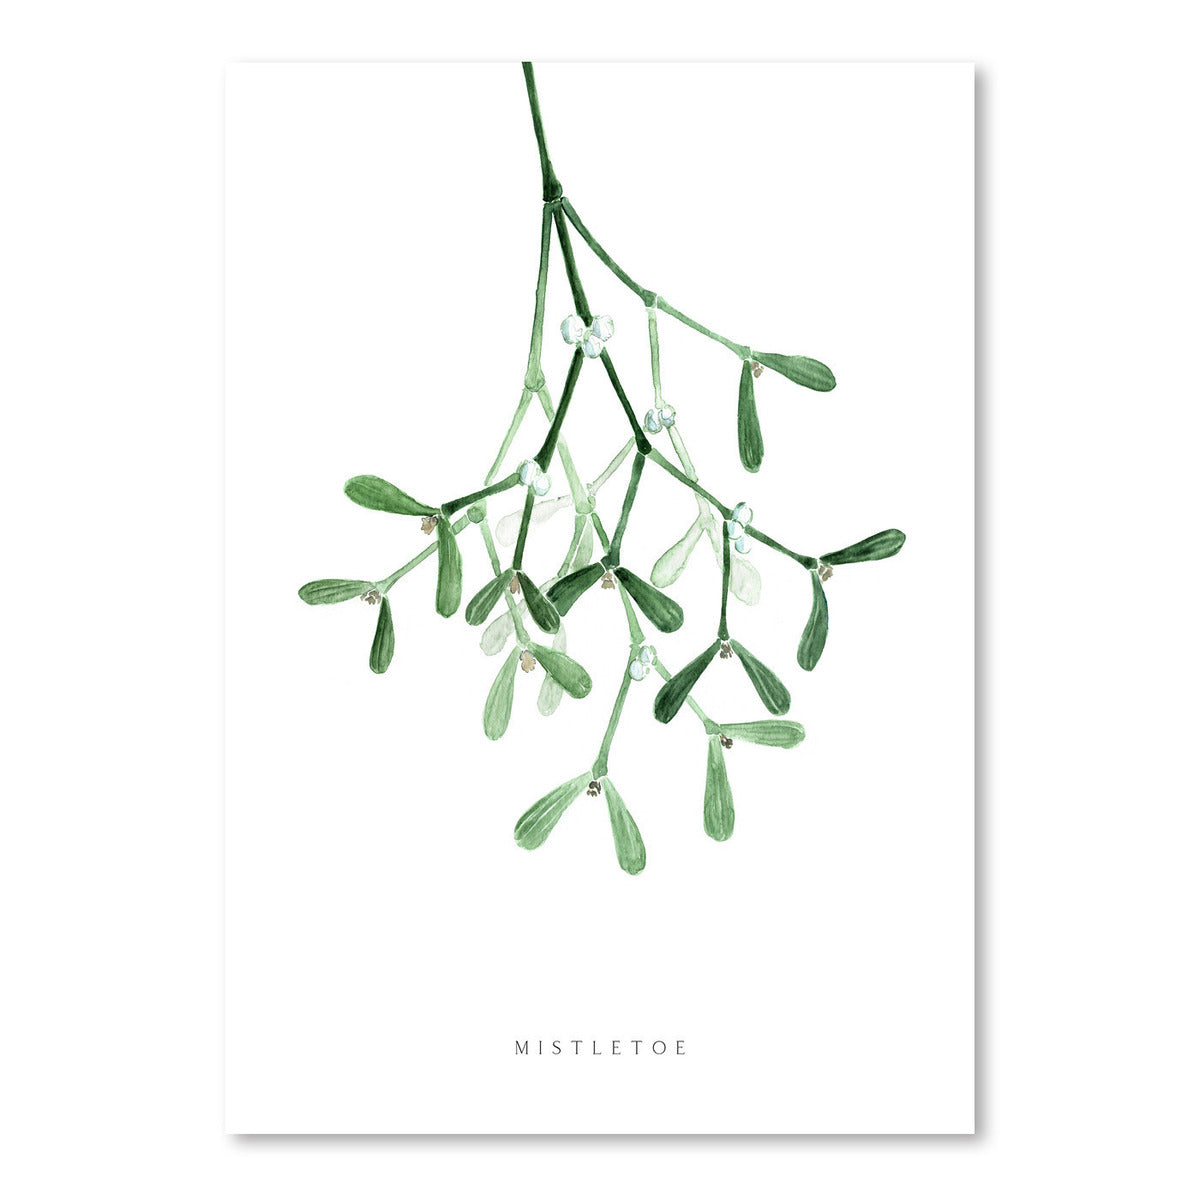 Watercolor Mistletoe by Blursbyai - Art Print - Americanflat